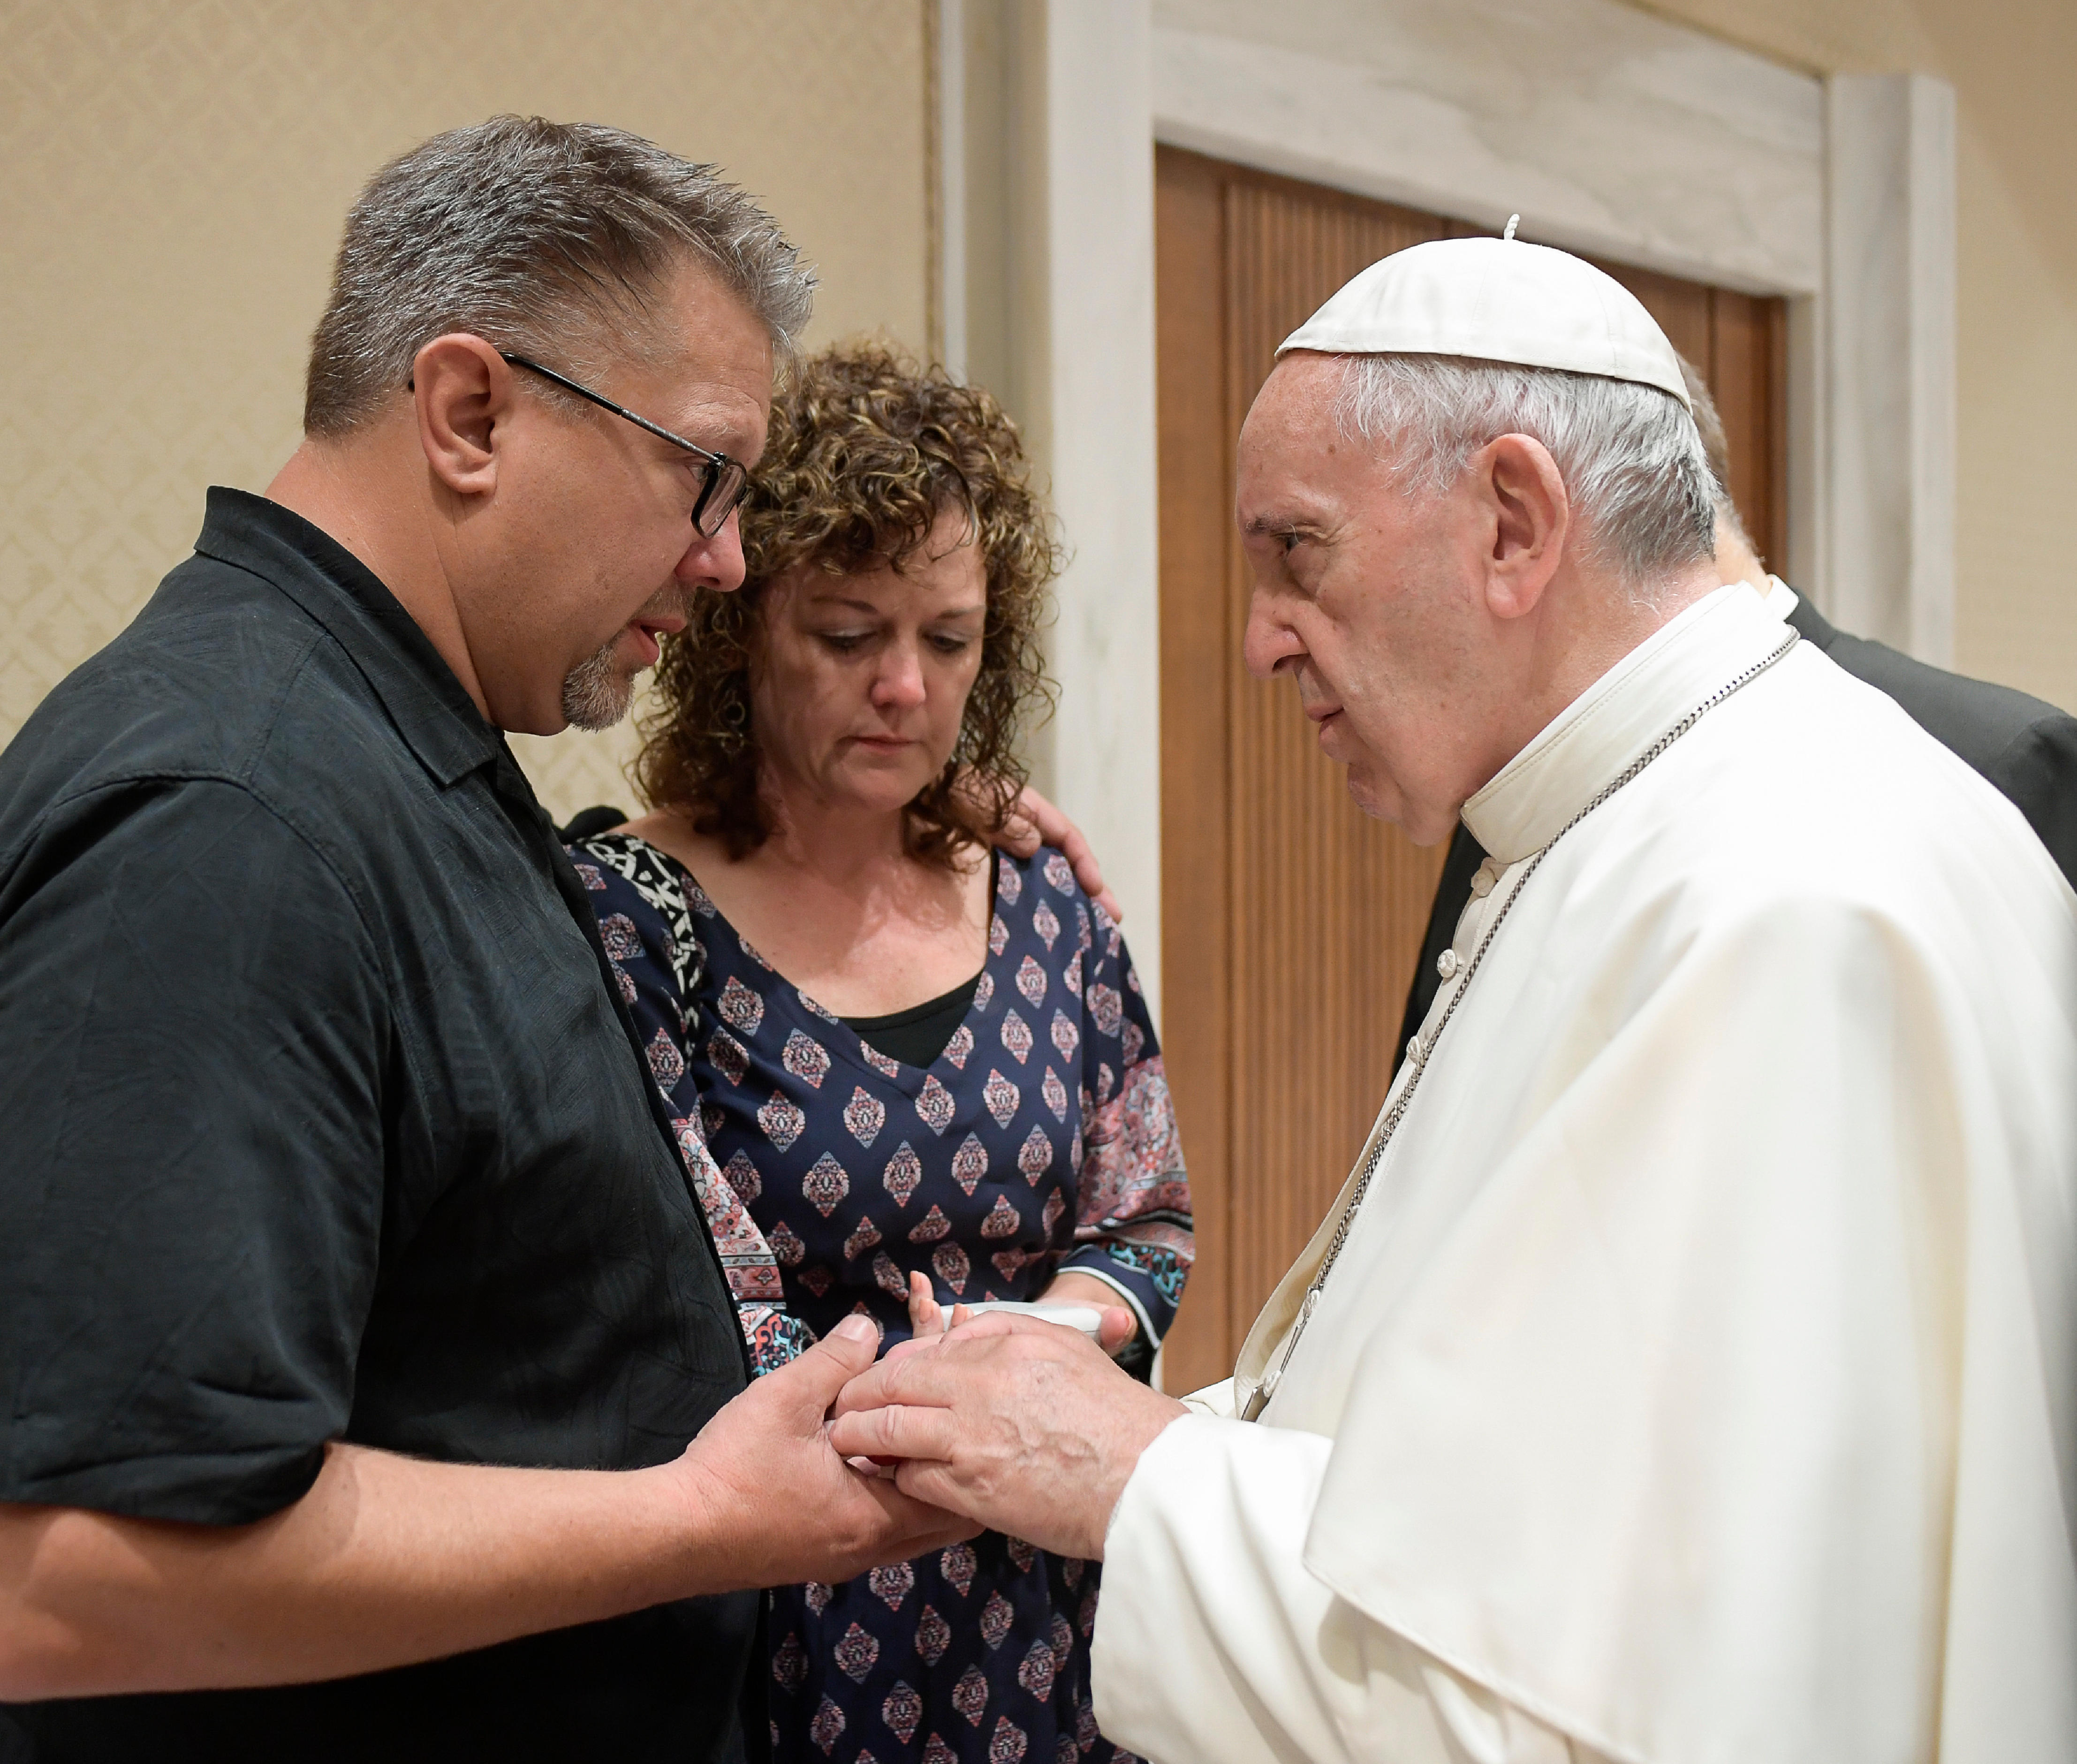 Pope Francis meets Nick, left, and Jodi Solomon, the parents of Beau Solomon, a U.S. college student whose body was found in Rome's Tiber river this week, during private encounter on Wednesday, July 6, 2016.